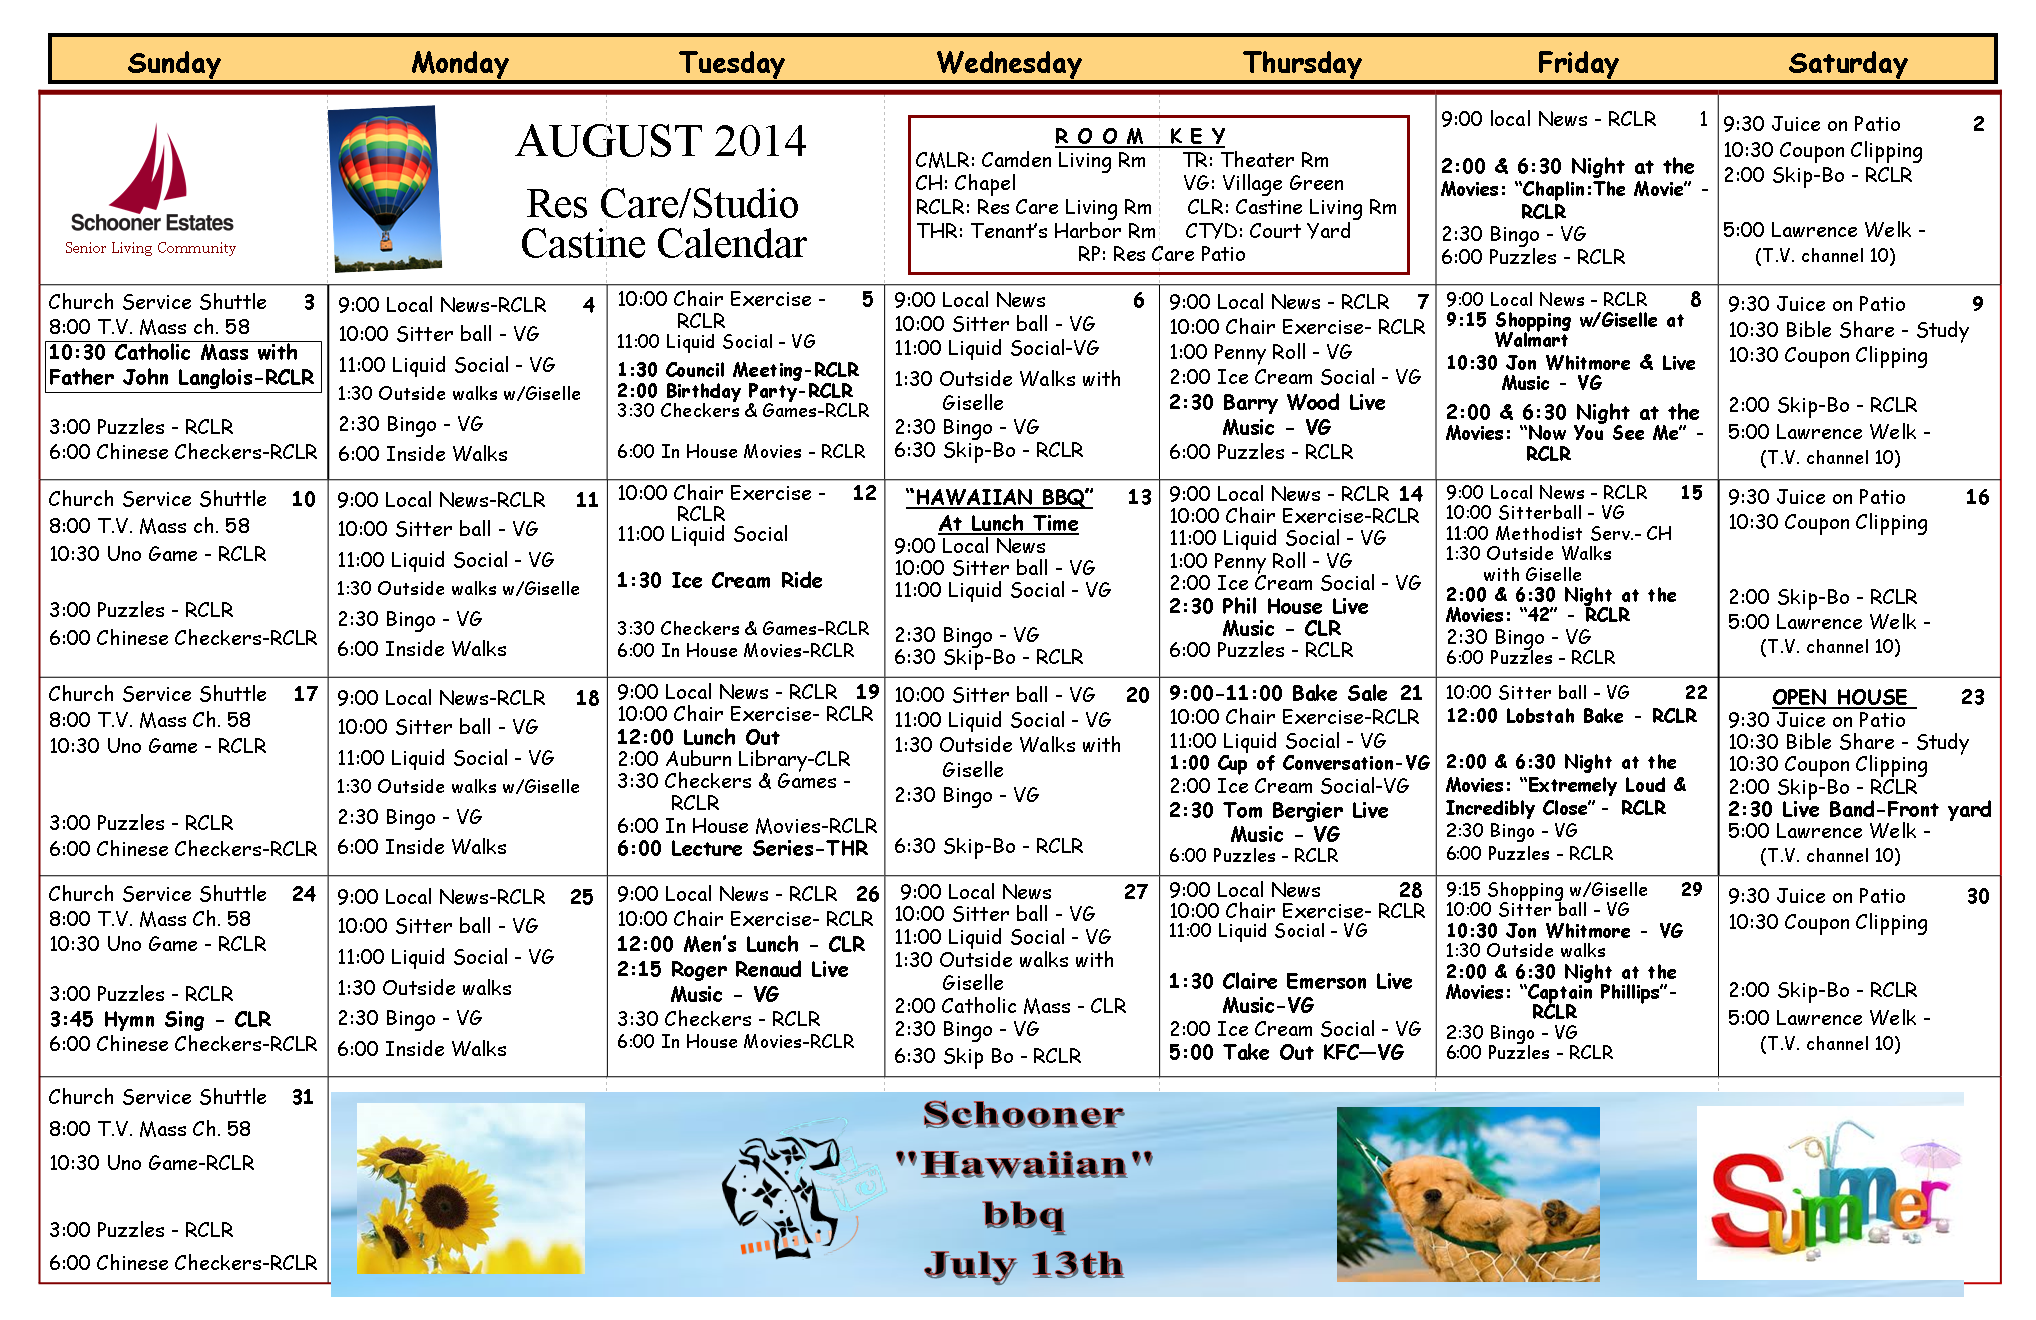 August 2014 Castine and Residential Care Calendar